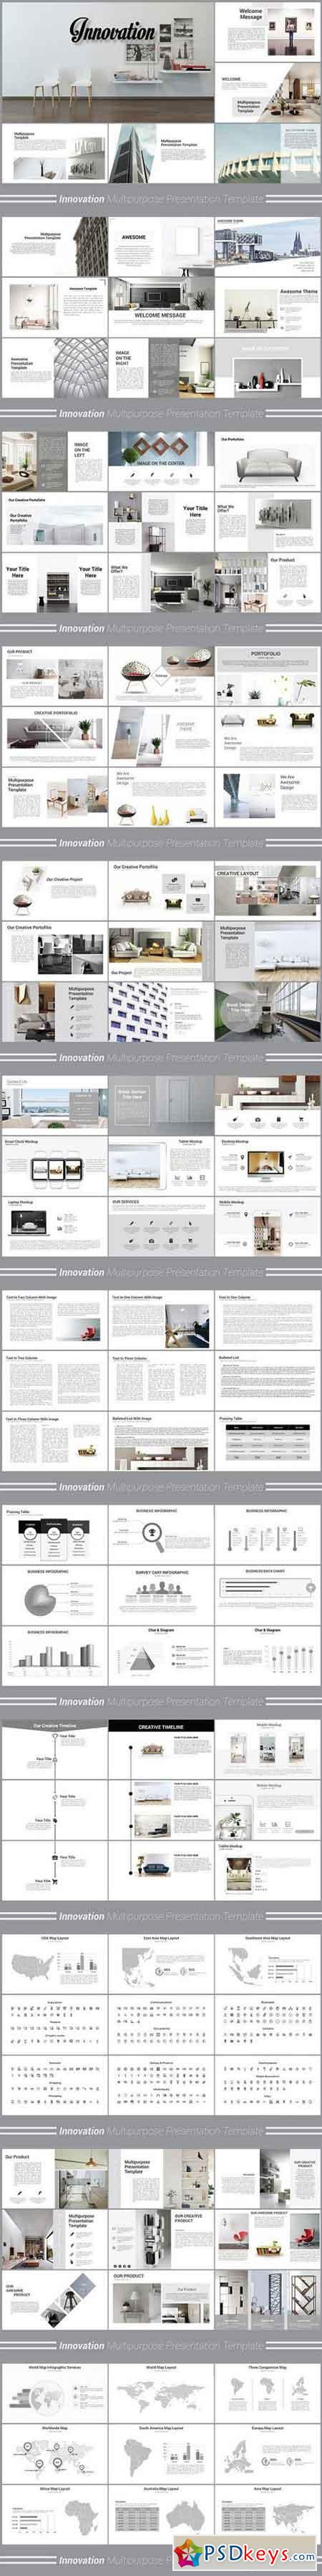 Innovation Powerpoint Template 1200789